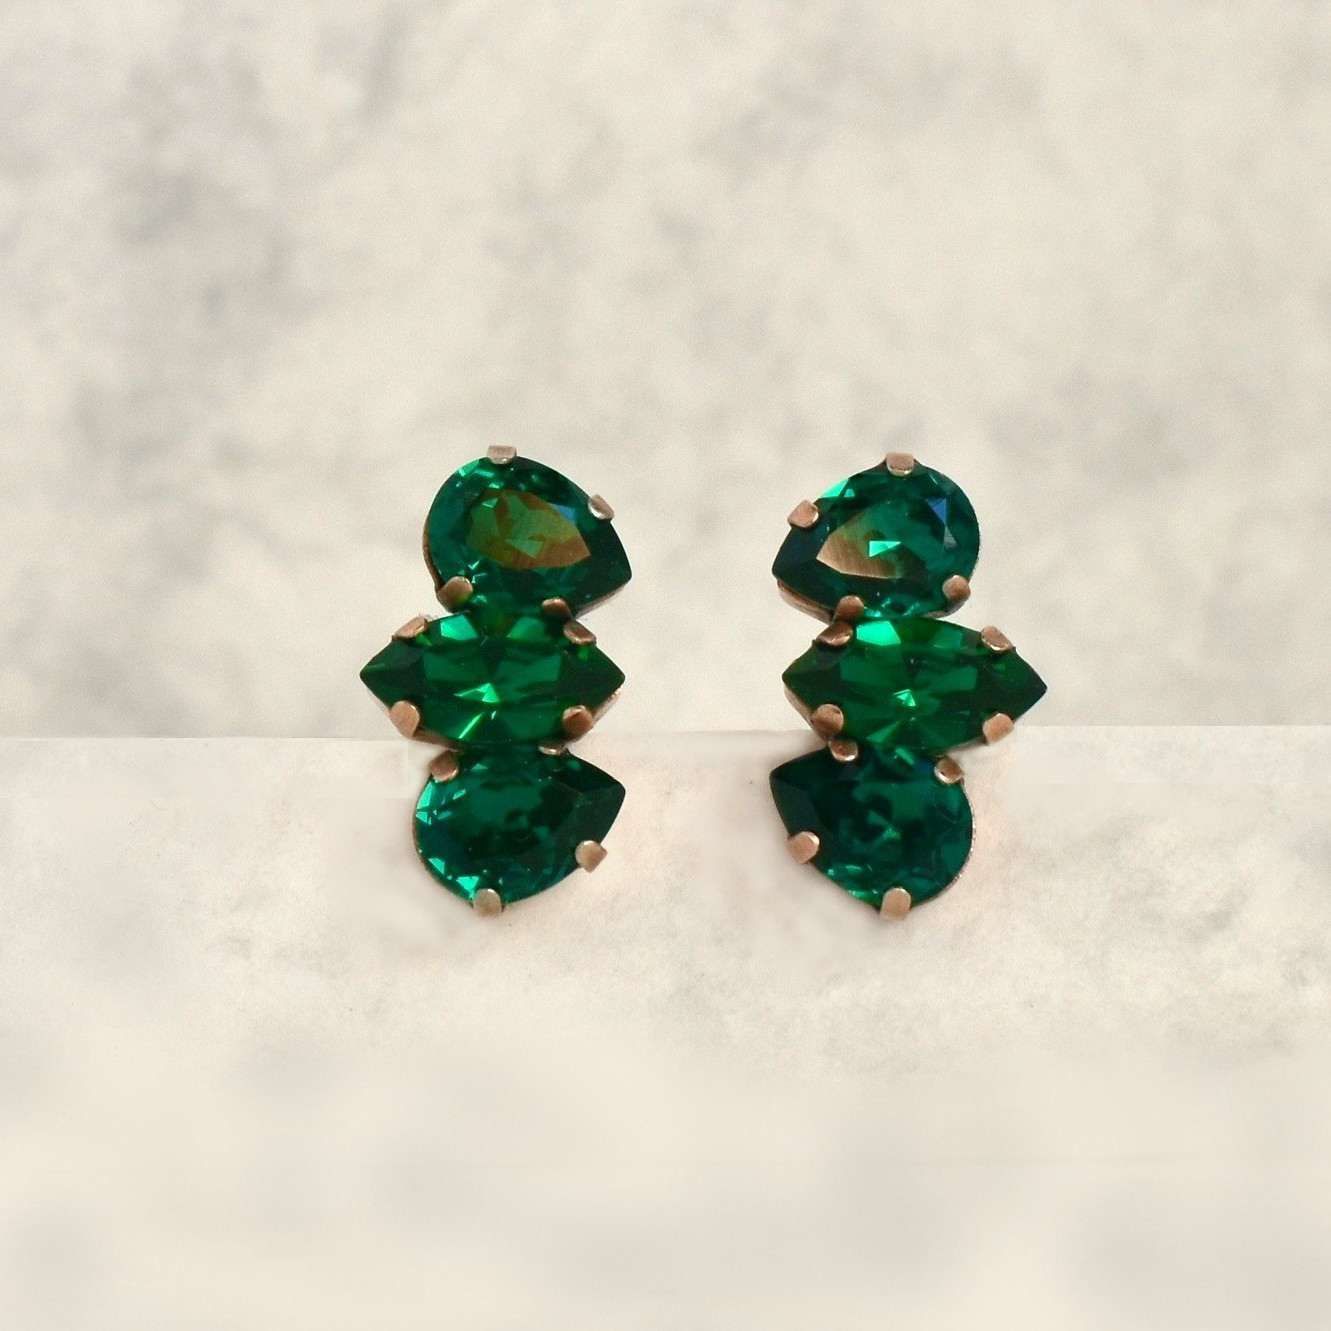 Dainty Green Stud Earrings With Swarovski Emerald Crystals